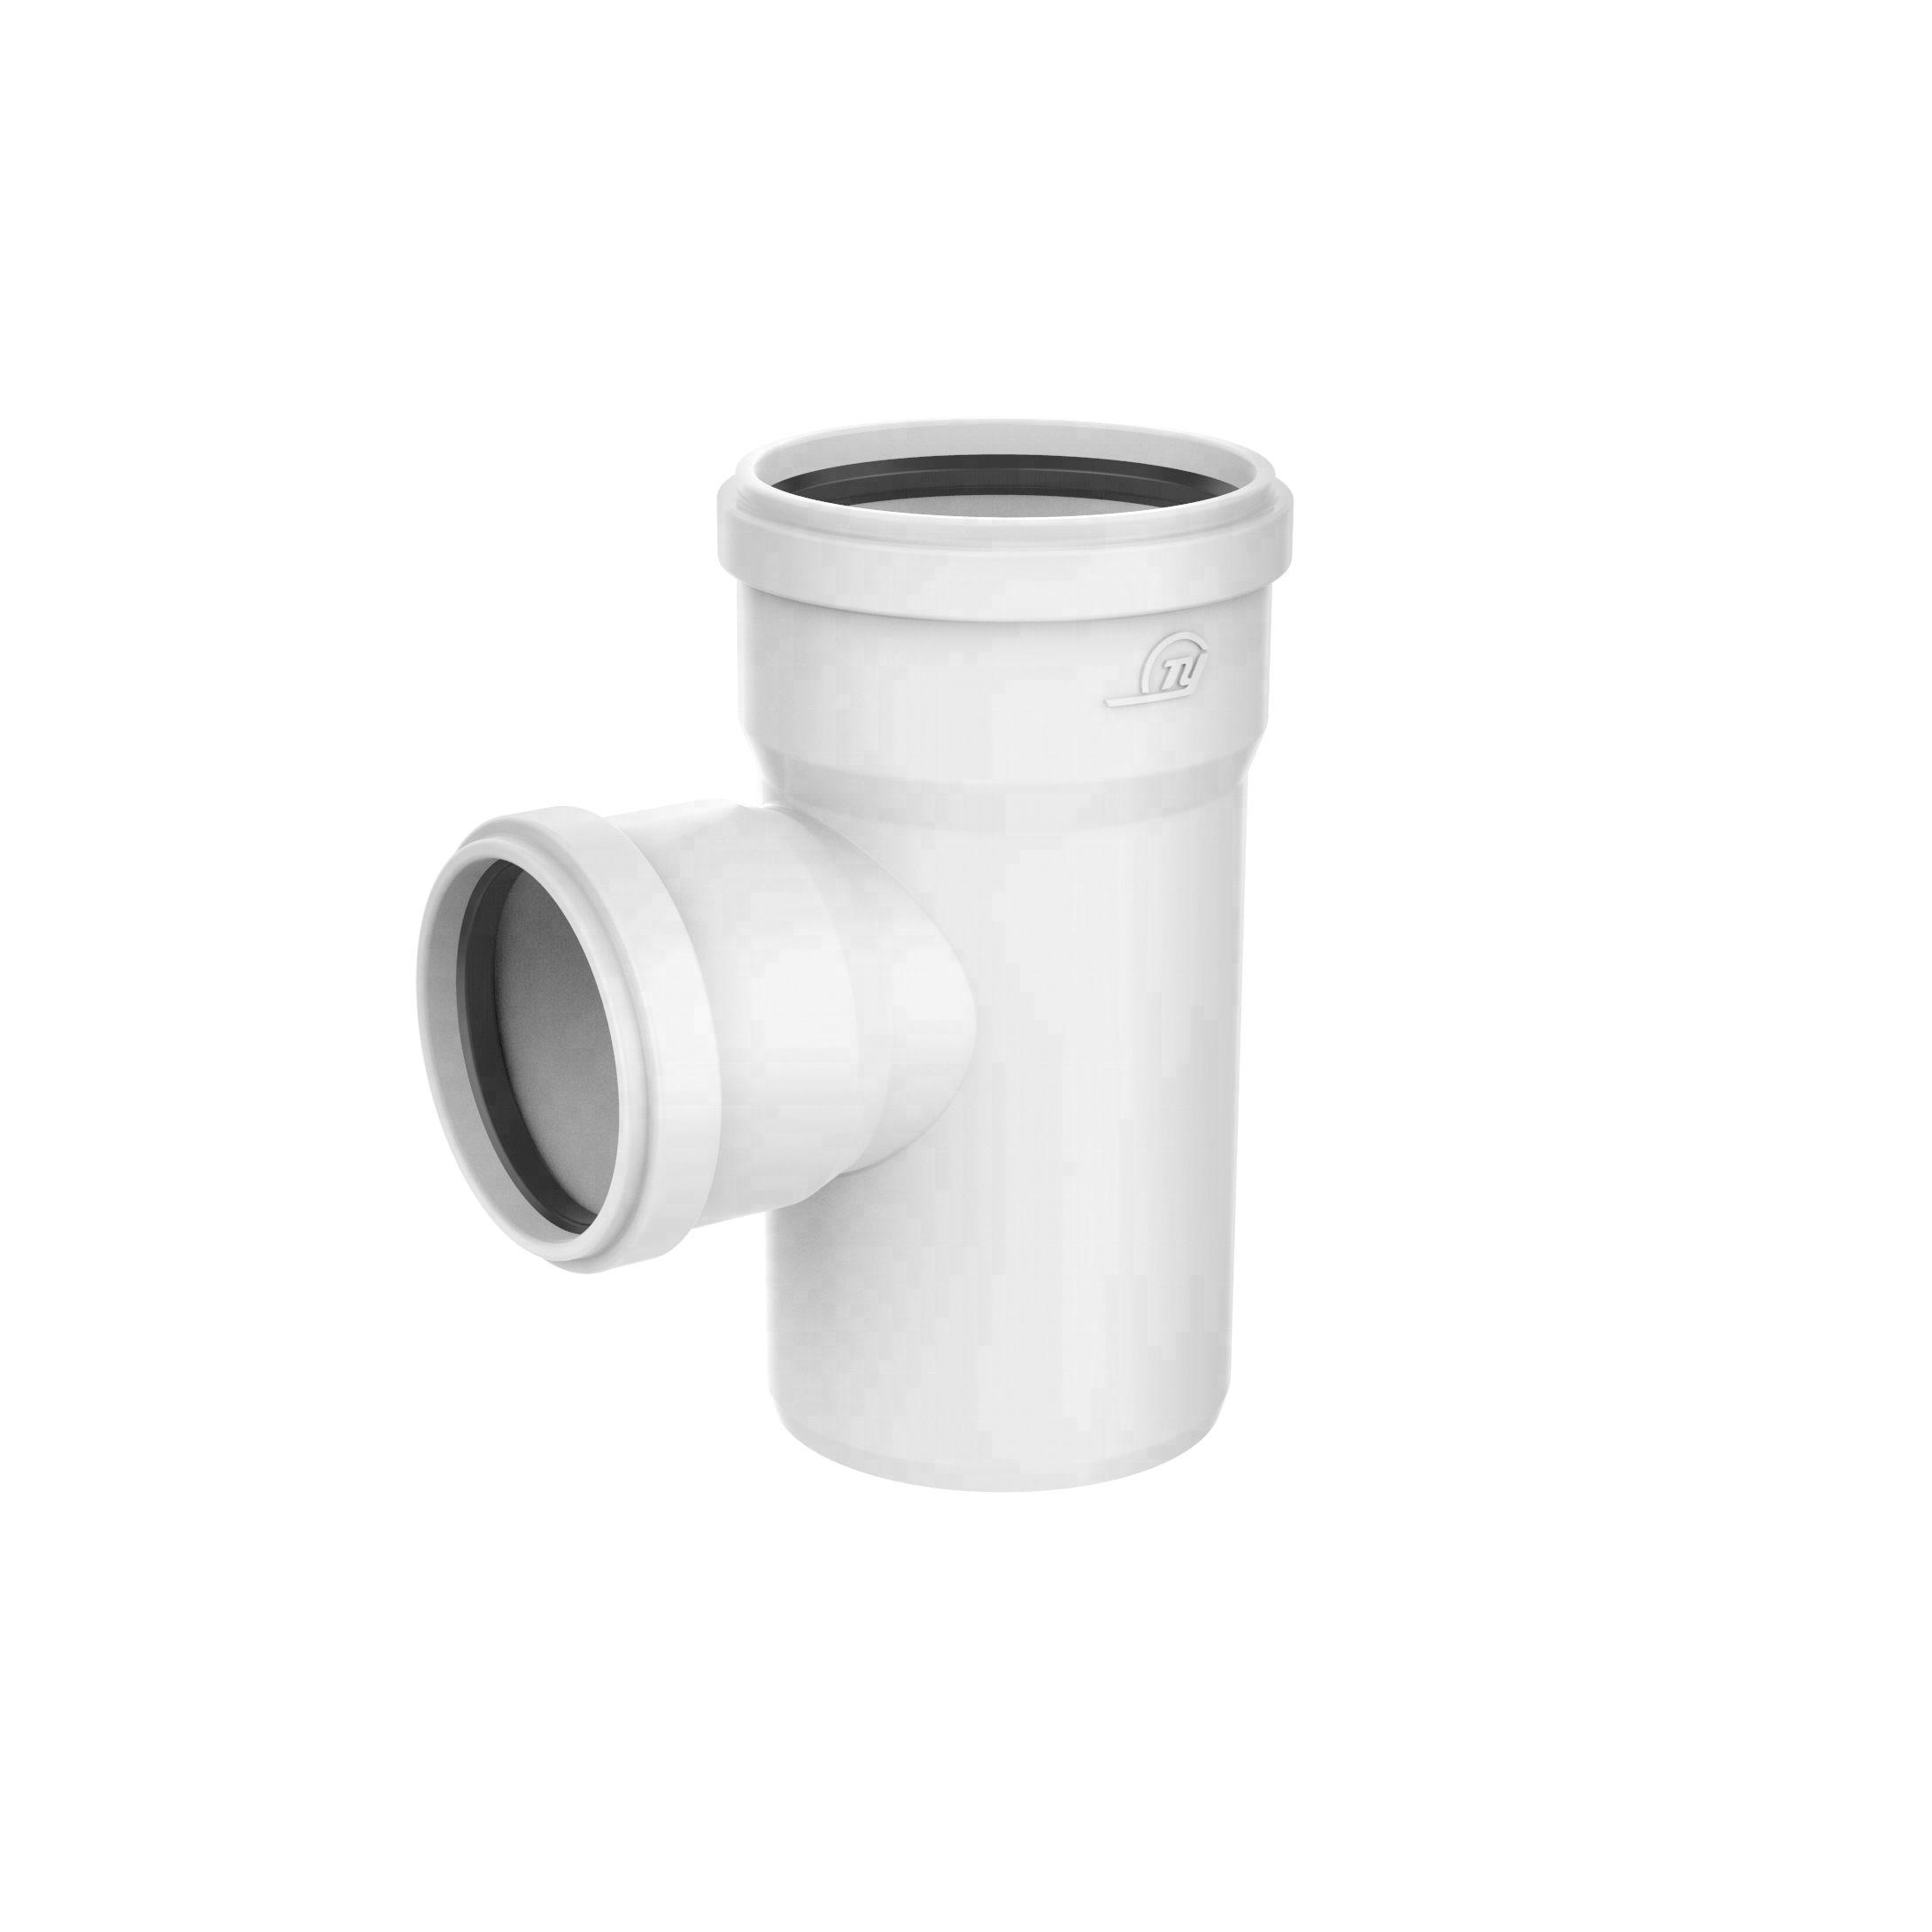 PVC UPVC Plastic hdpe drainage Rubber Joints pipe fittings socket weld Reducing Tee